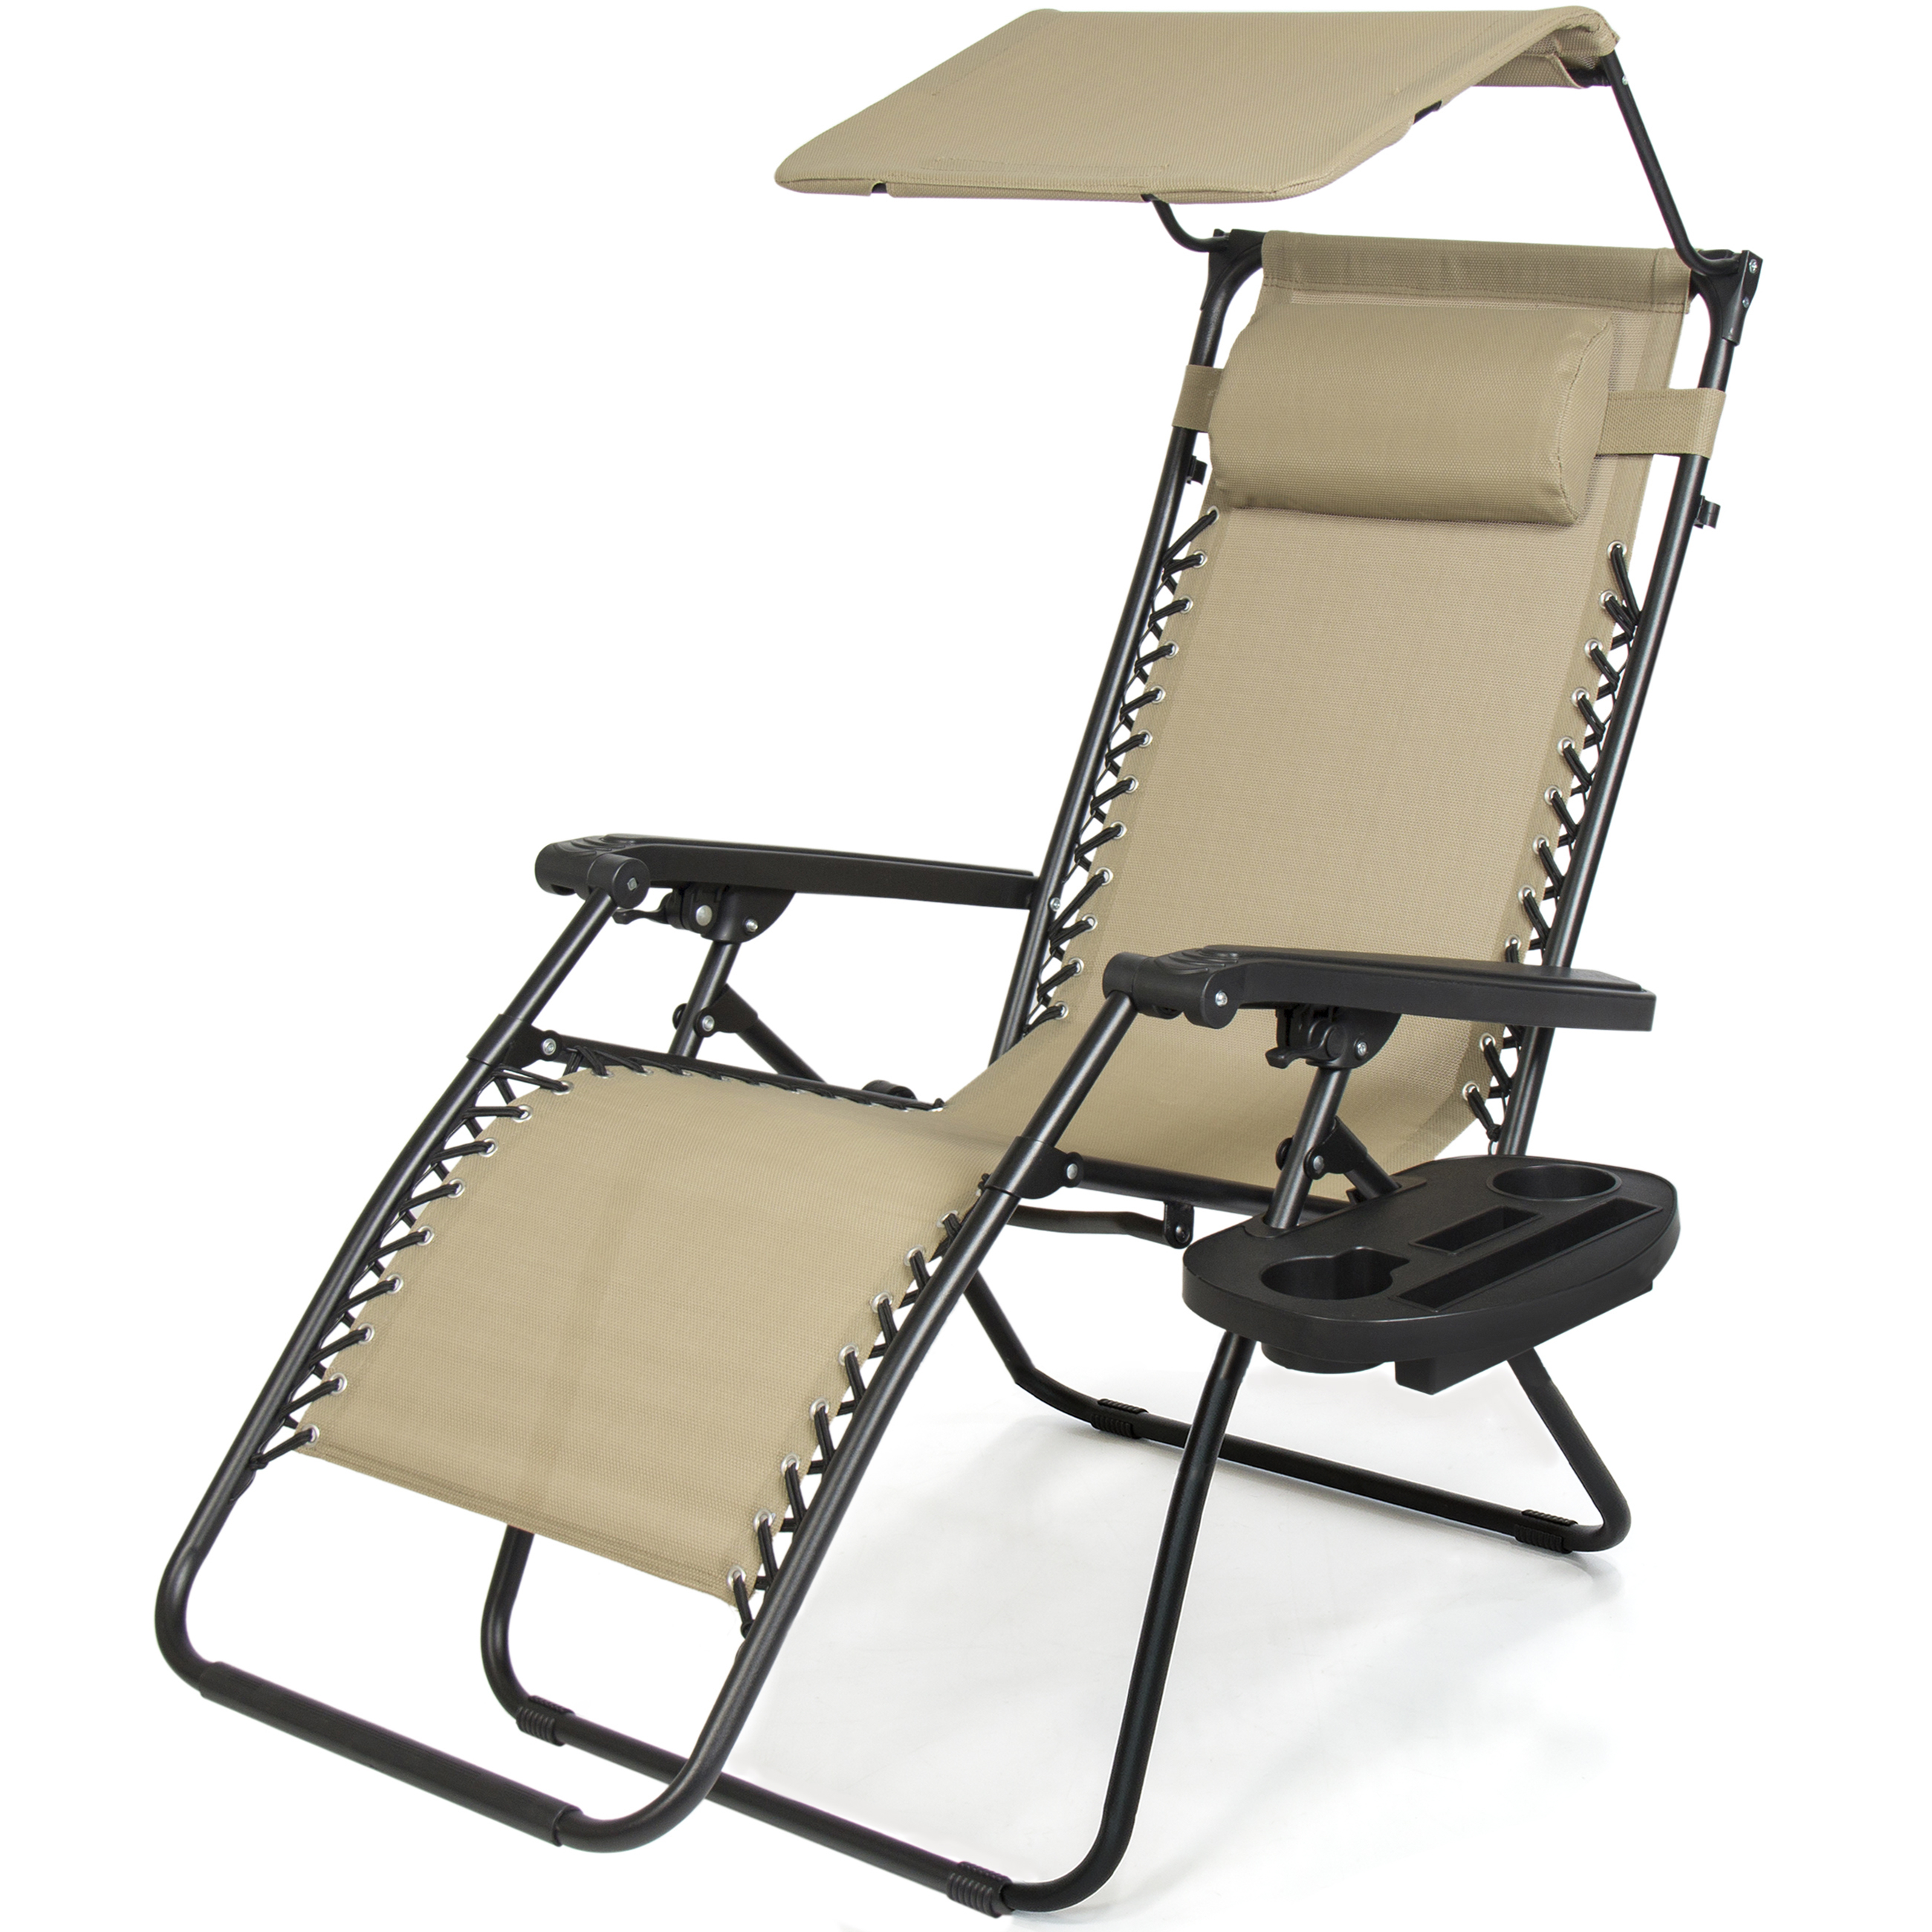 Famous Oversized Extra Large Chairs With Canopy And Tray With Regard To Best Choice Products Folding Steel Mesh Zero Gravity Recliner Lounge Chair  W/ Adjustable Canopy Shade And Cup Holder Accessory Tray, Beige – (View 7 of 25)